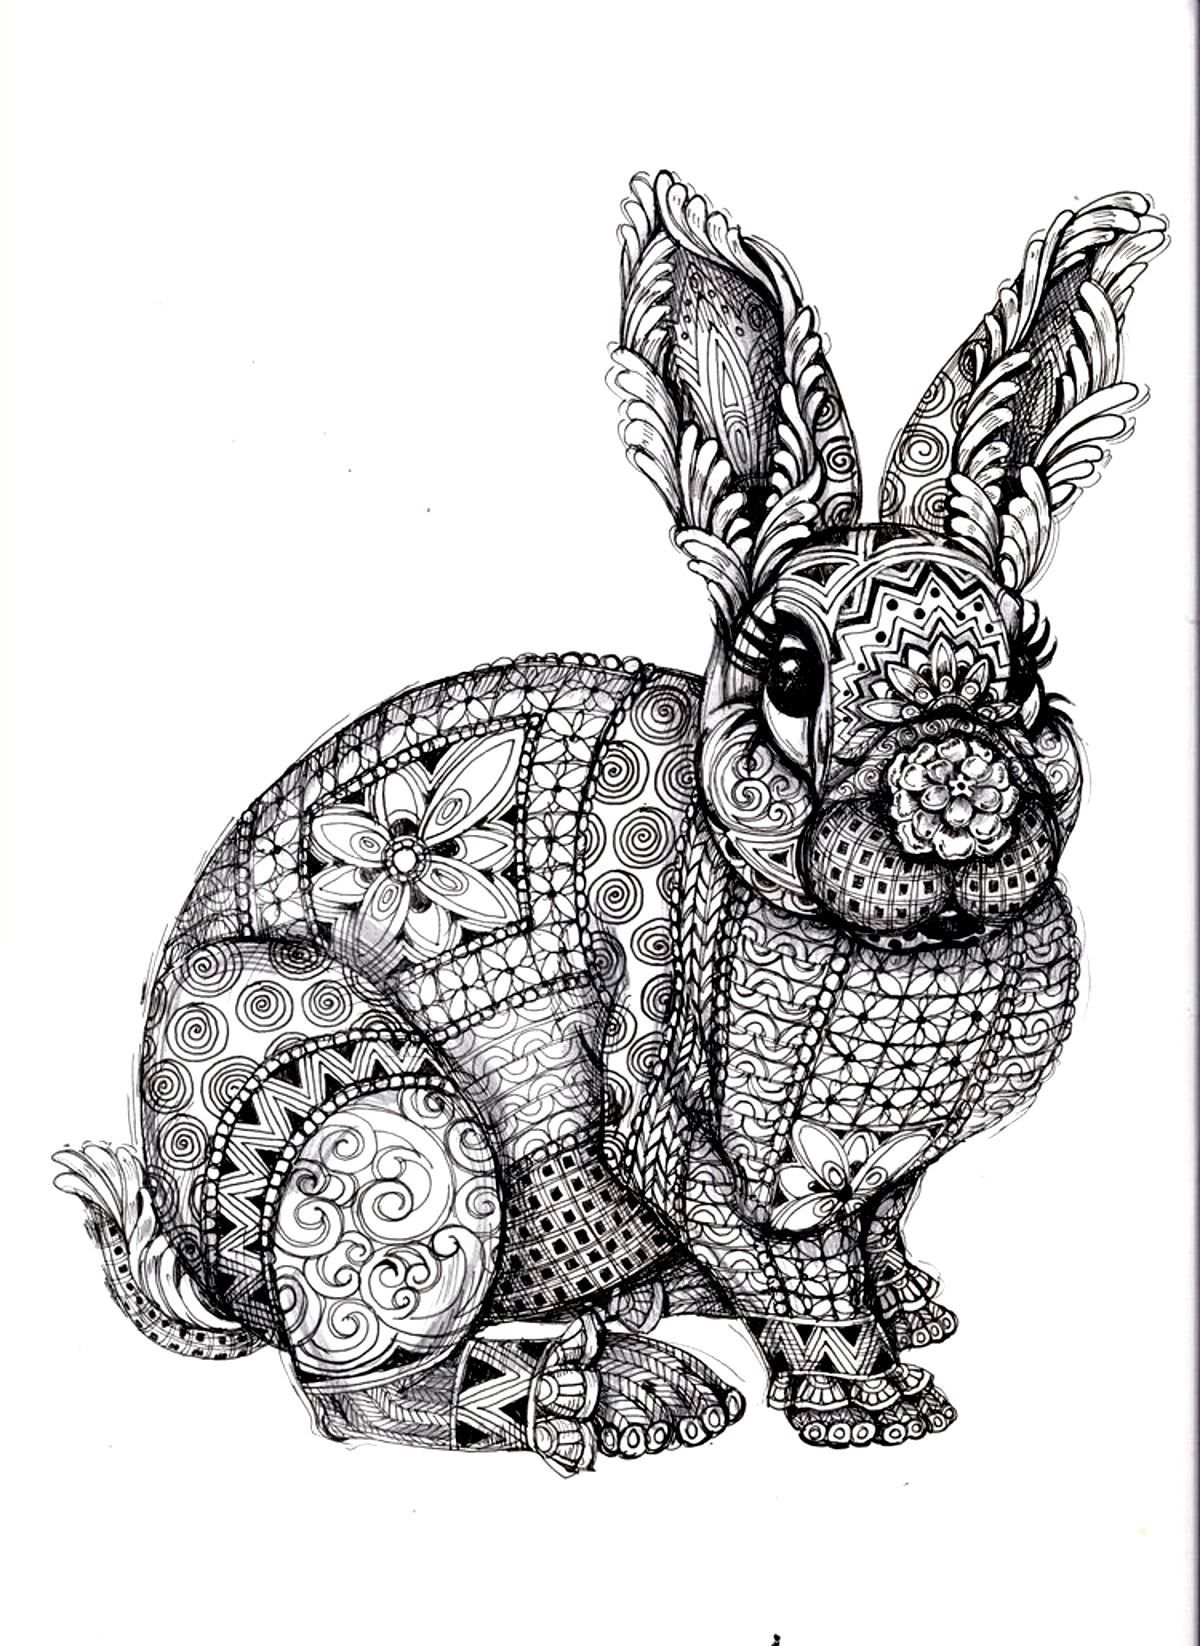 Coloring pictures for adults - To Print This Free Coloring Page Coloring Adult Difficult Rabbit